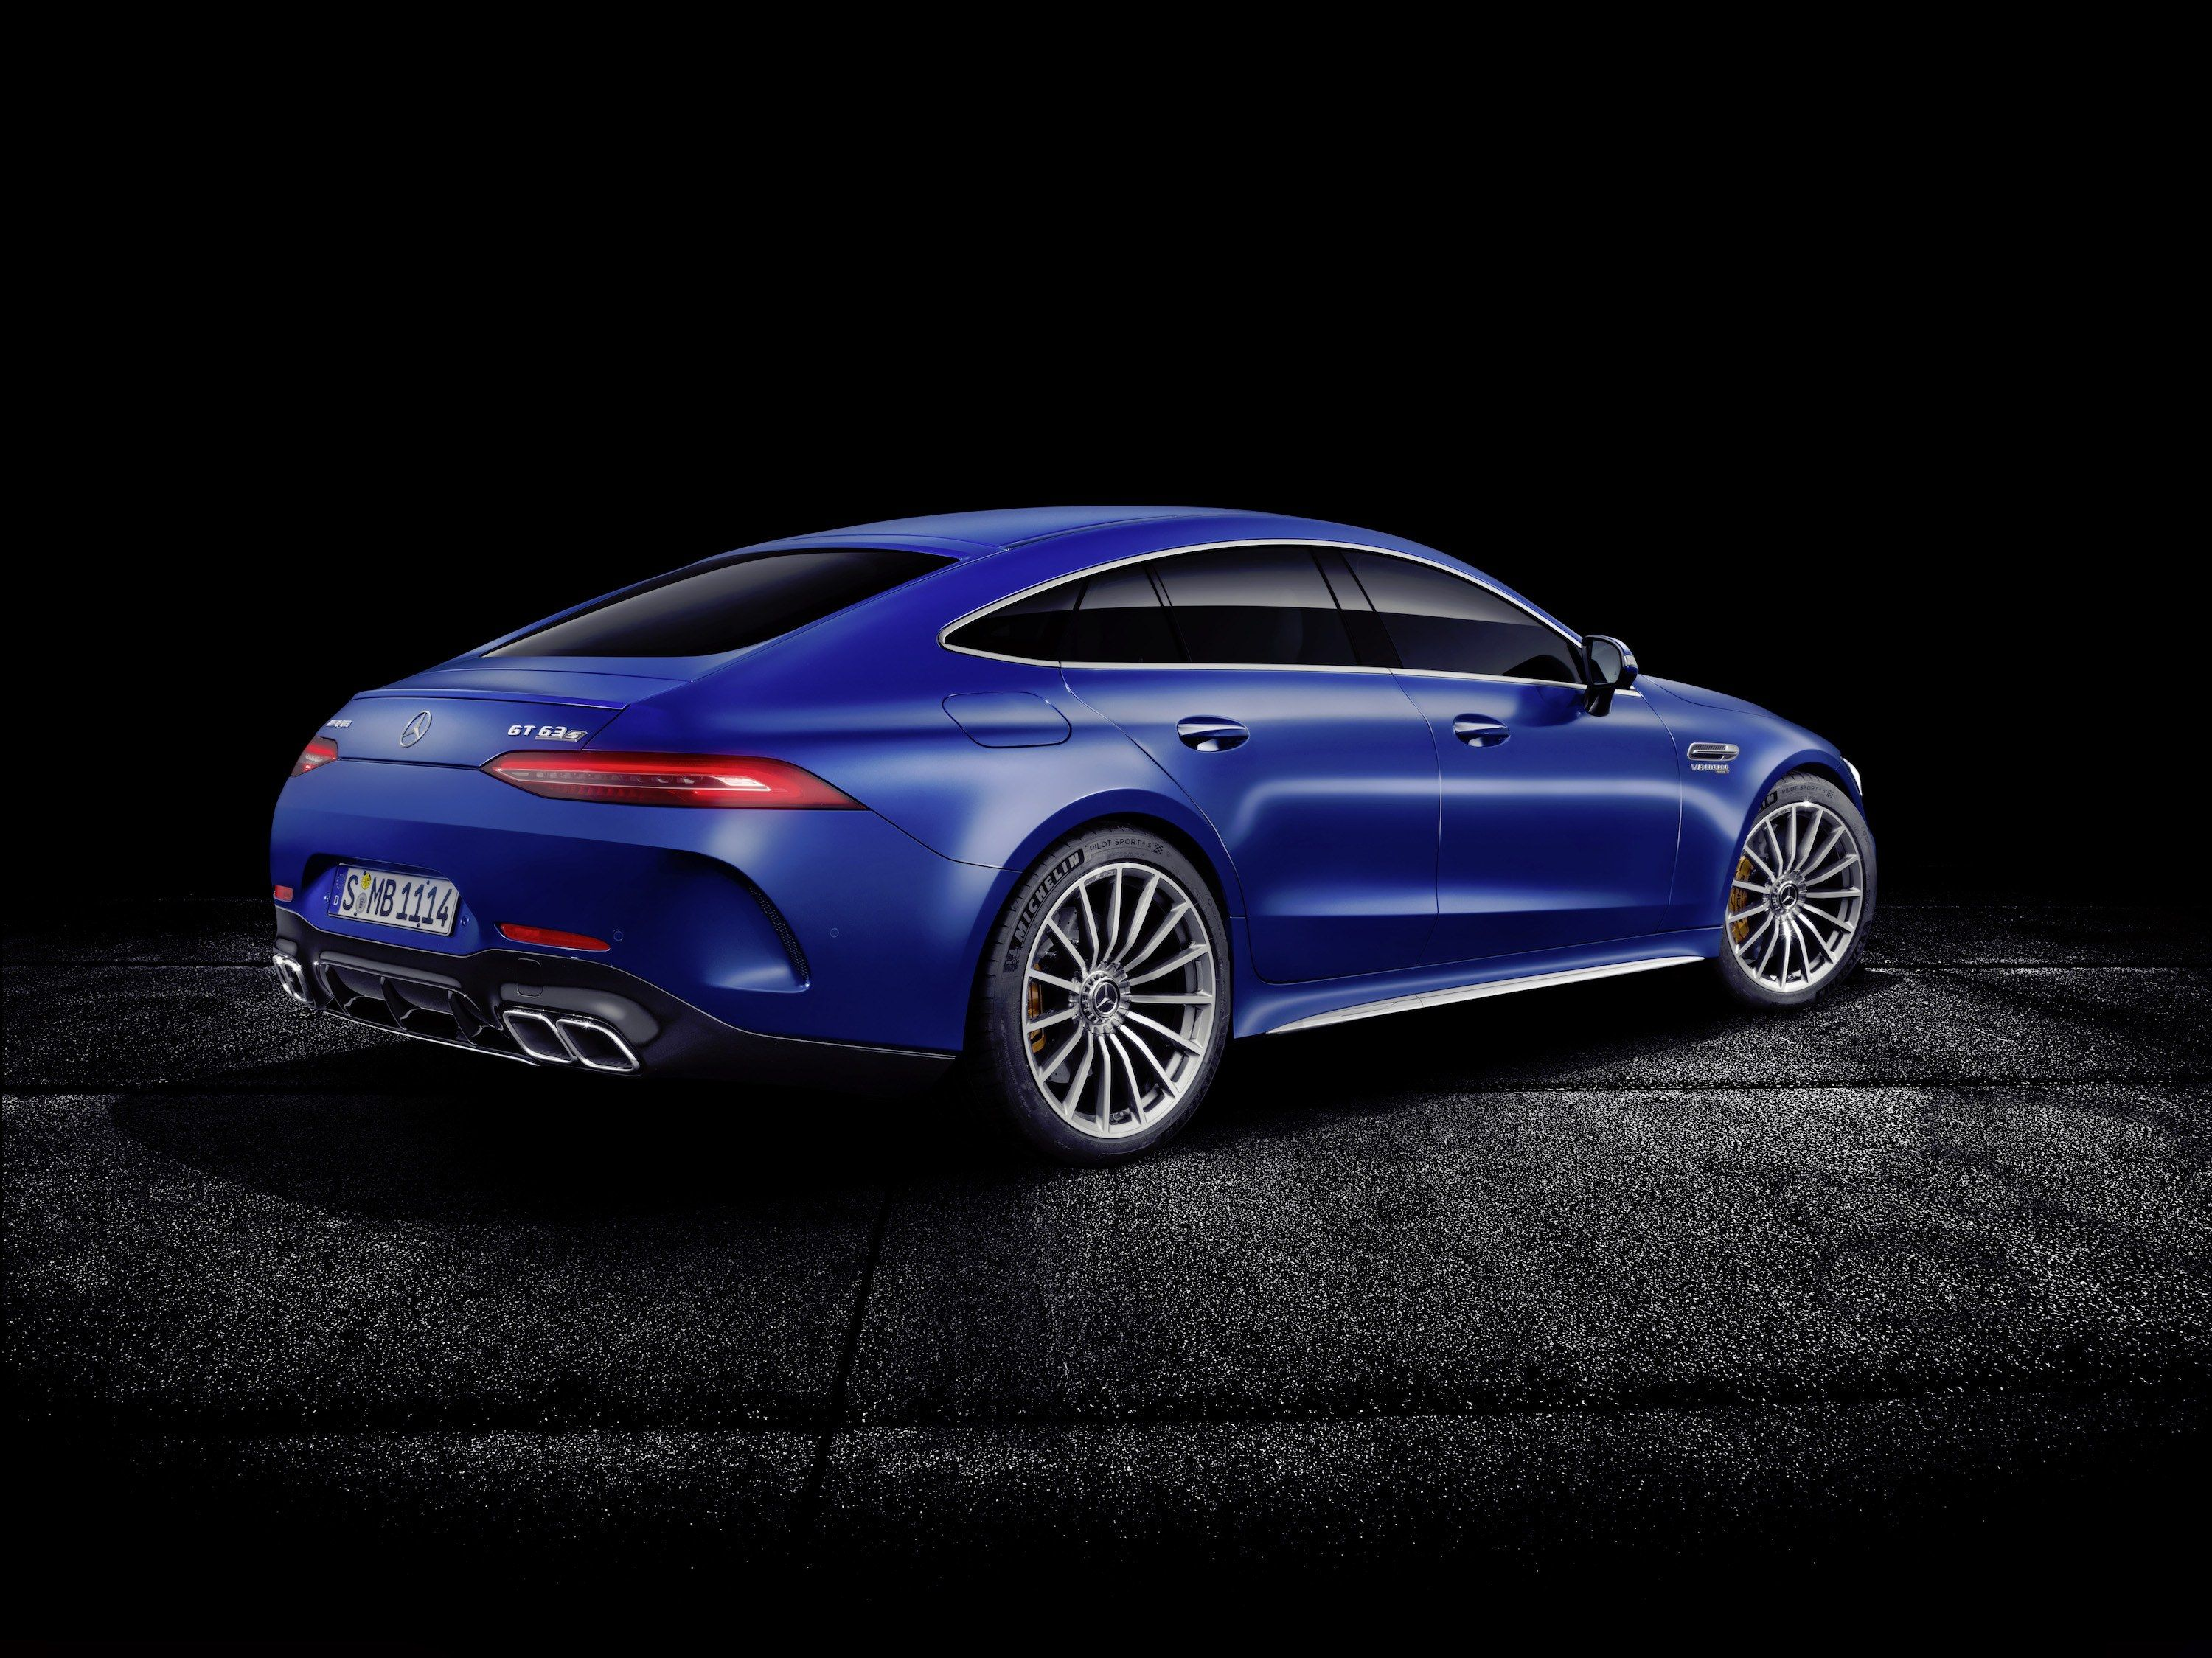 The 15 Hottest New Cars At The 2018 Geneva Motor Show Mercedes Amg Mercedes Benz Wallpaper Mercedes Benz Cars